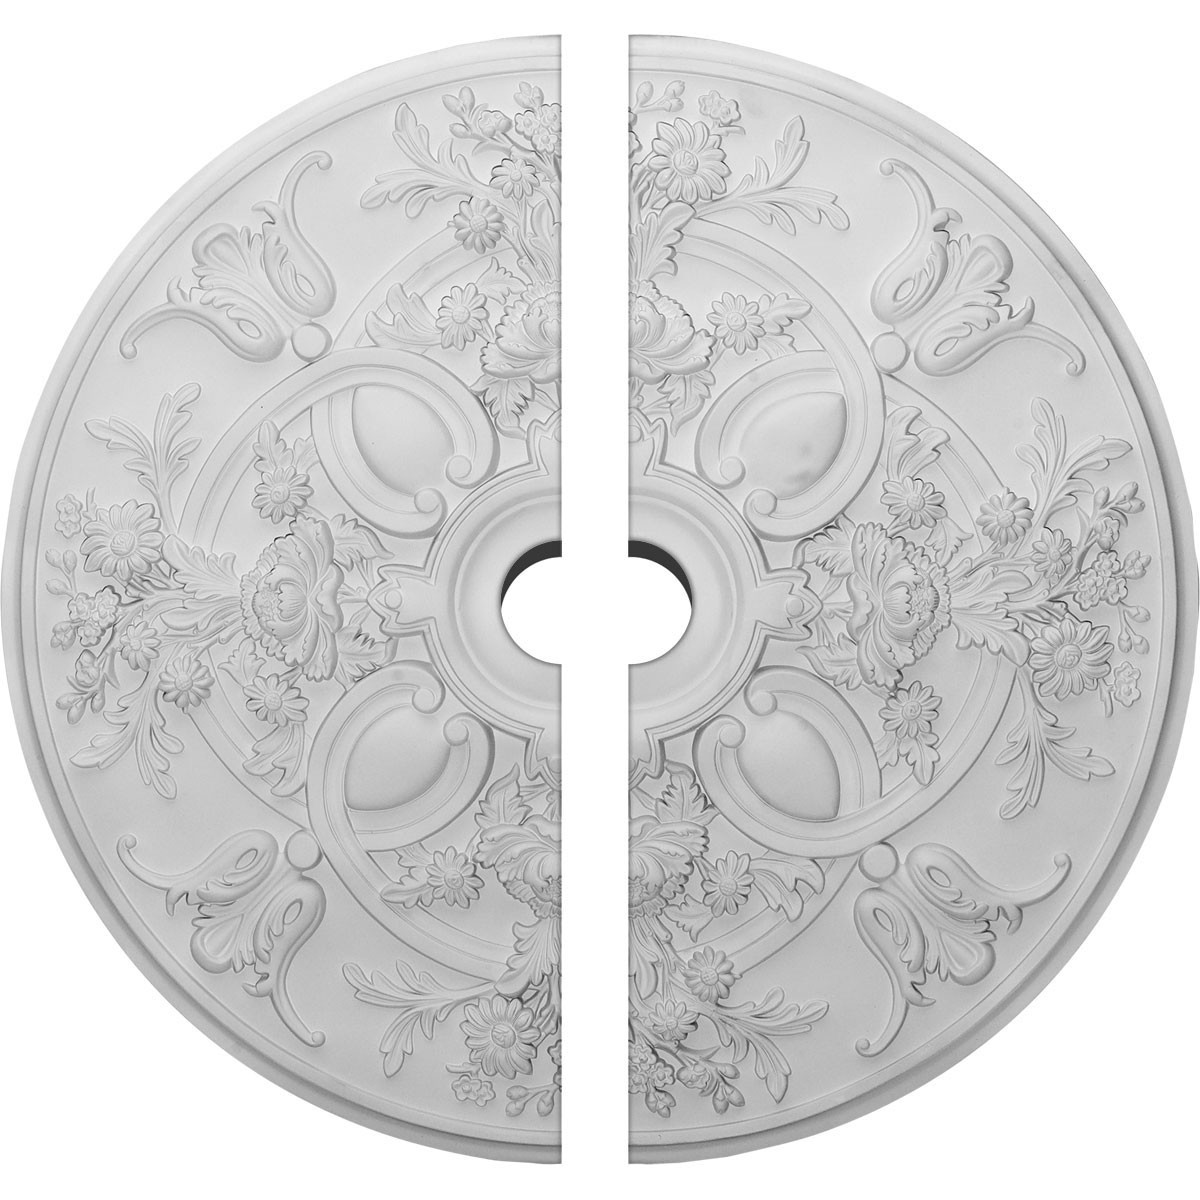 """EM-CM31BA2-03500 - 31 1/4""""OD x 3 1/2""""ID x 2 1/4""""P Baile Ceiling Medallion, Two Piece (Fits Canopies up to 6"""")"""